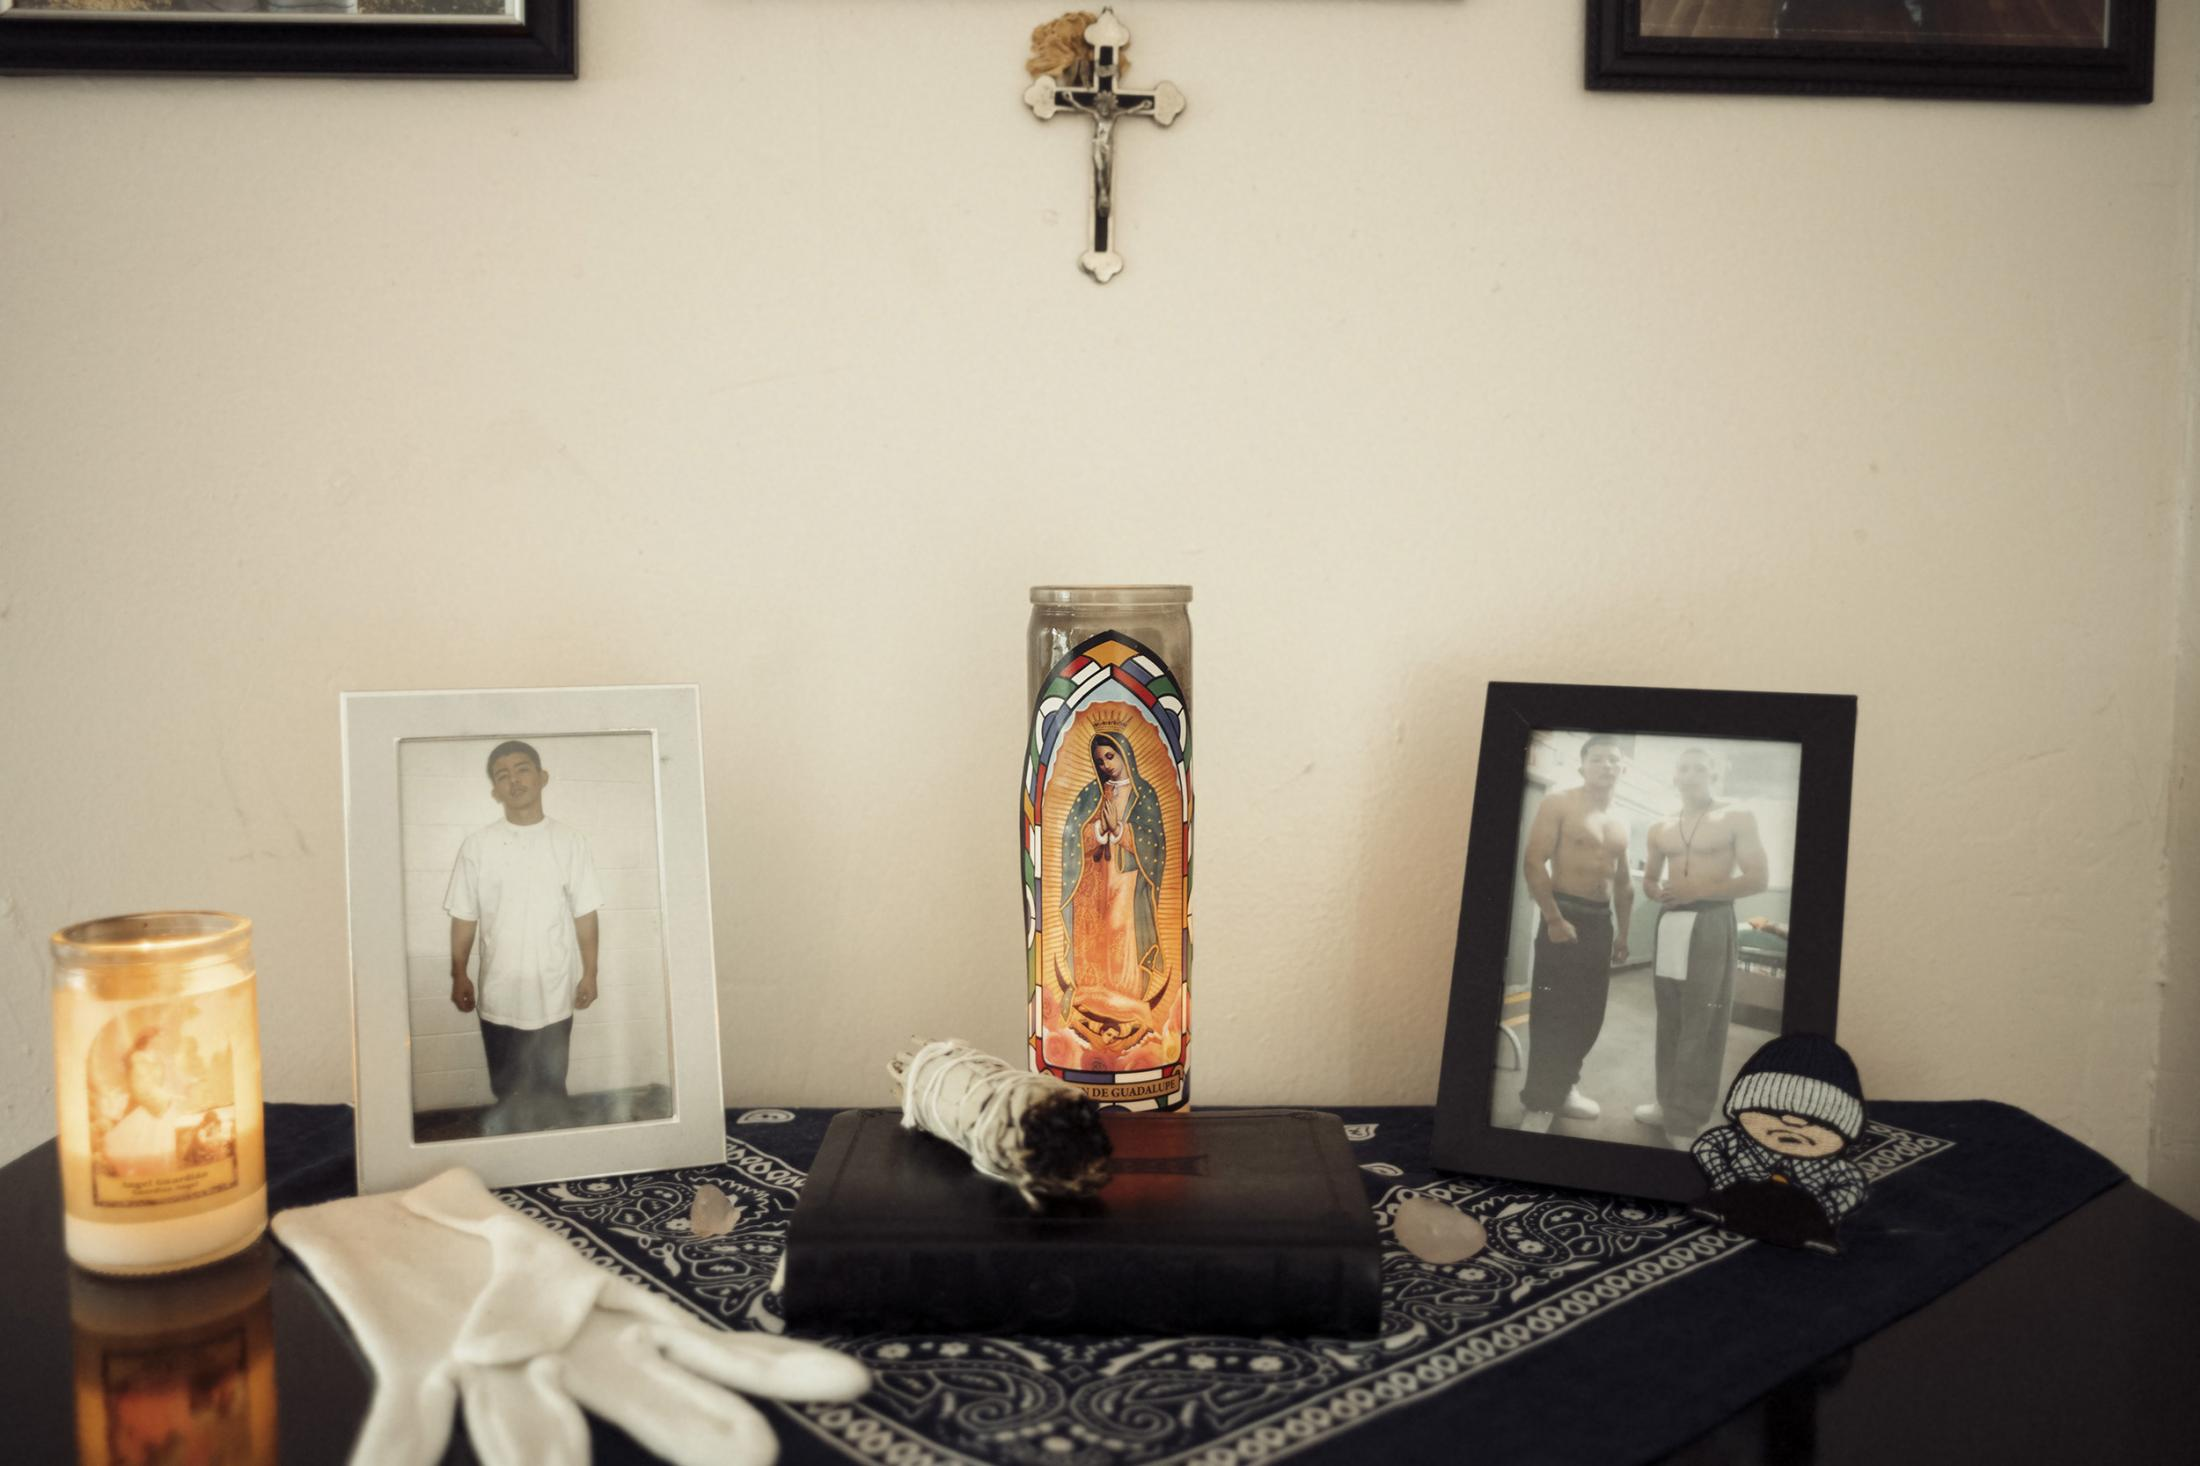 """An altar for Marcus Tapia's best friend, """"Yayo,"""" who was gunned down soon after their mutual release from California Youth Authority prison. Tapia kept the altar on the dresser of his small apartment which he shared with his girlfriend whom he believed Yayo sent him from heaven, to watch out for him in his absence."""